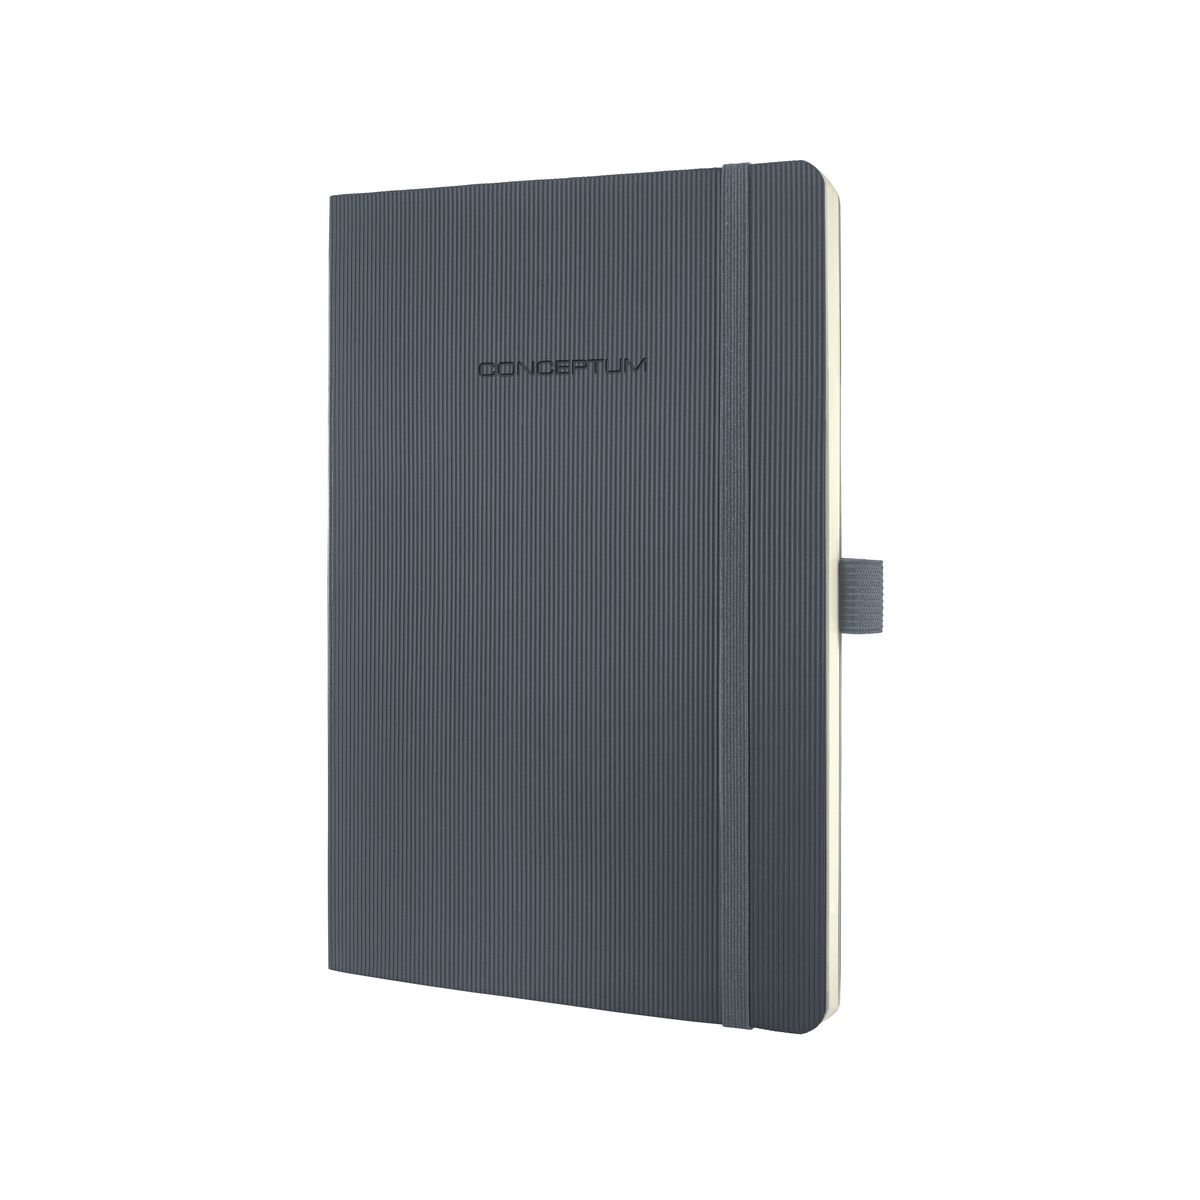 sigel Sigel Conceptum Notebook Softcover Lined 135x210x14mm D Grey Co329 - AD01